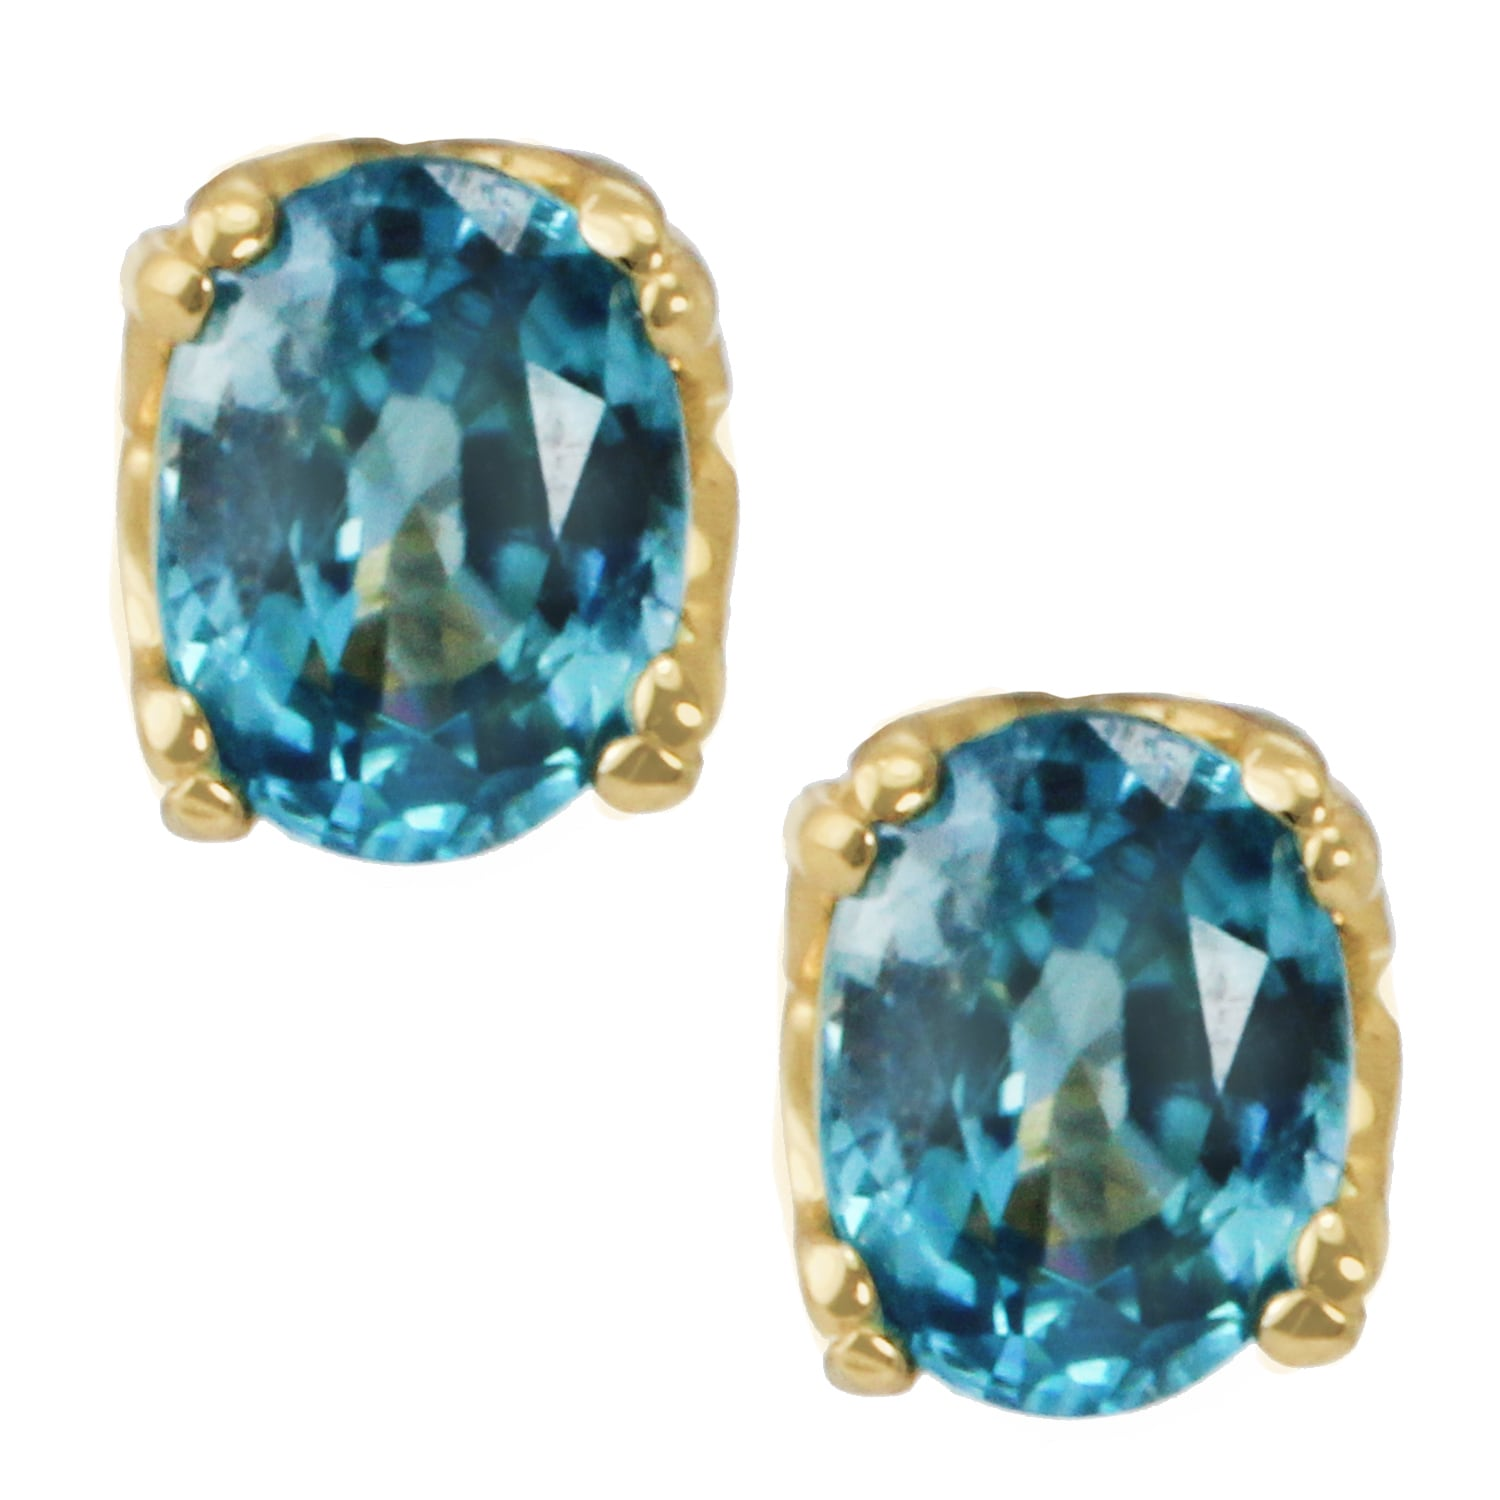 1847948f1 Shop One-of-a-kind Michael Valitutti 14K Yellow Gold Morganite, Blue Zircon  or Green Tourmaline Stud Earrings - On Sale - Free Shipping Today -  Overstock ...